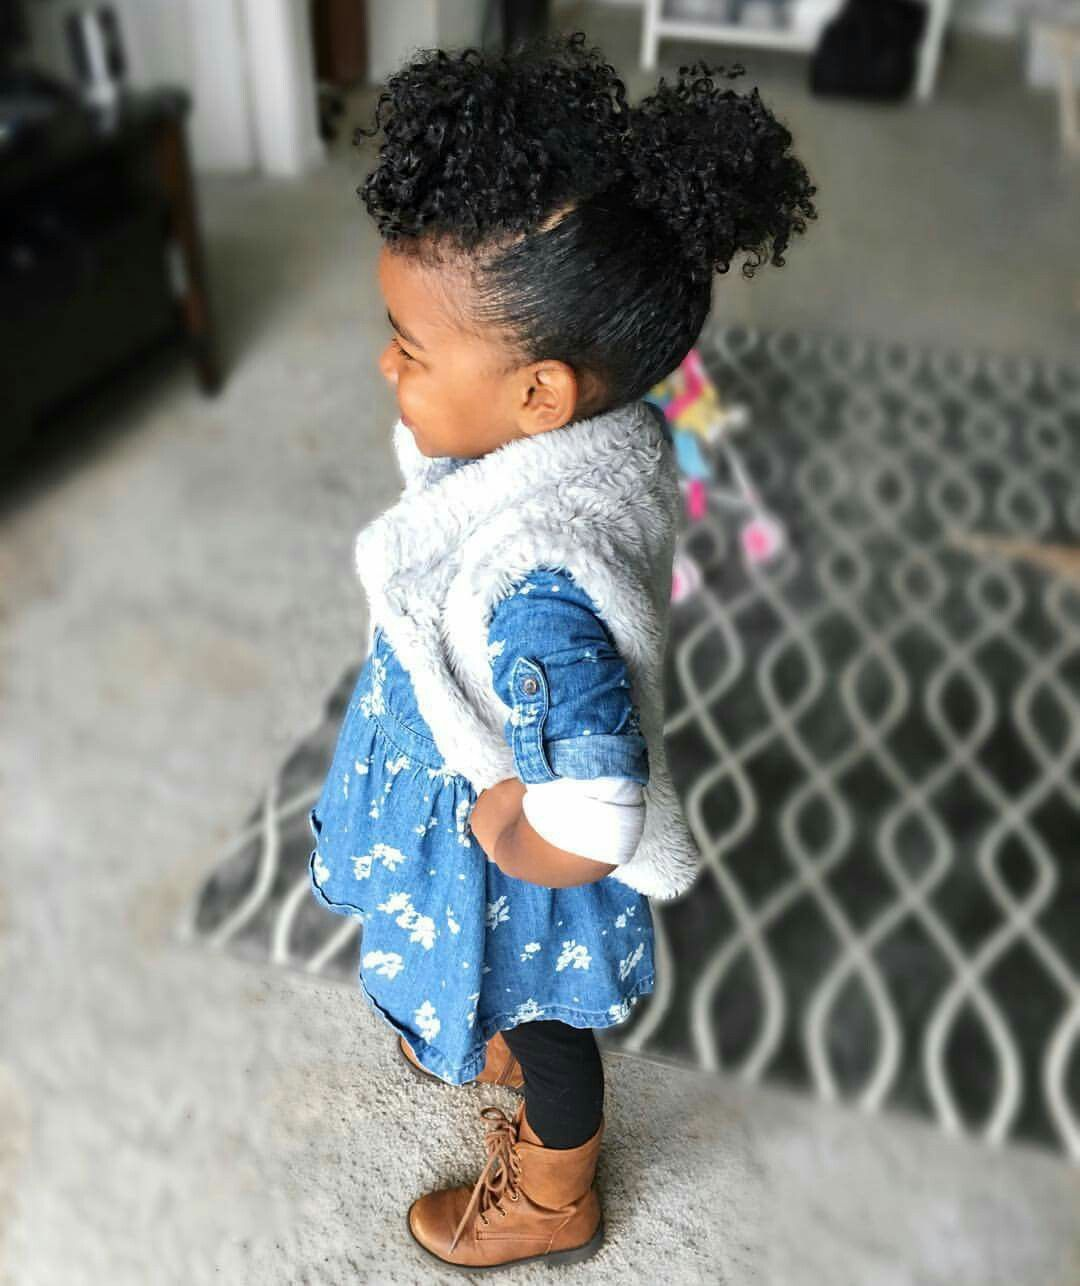 Cute hairstyles for kids hairstyleforblackwomen.net 110